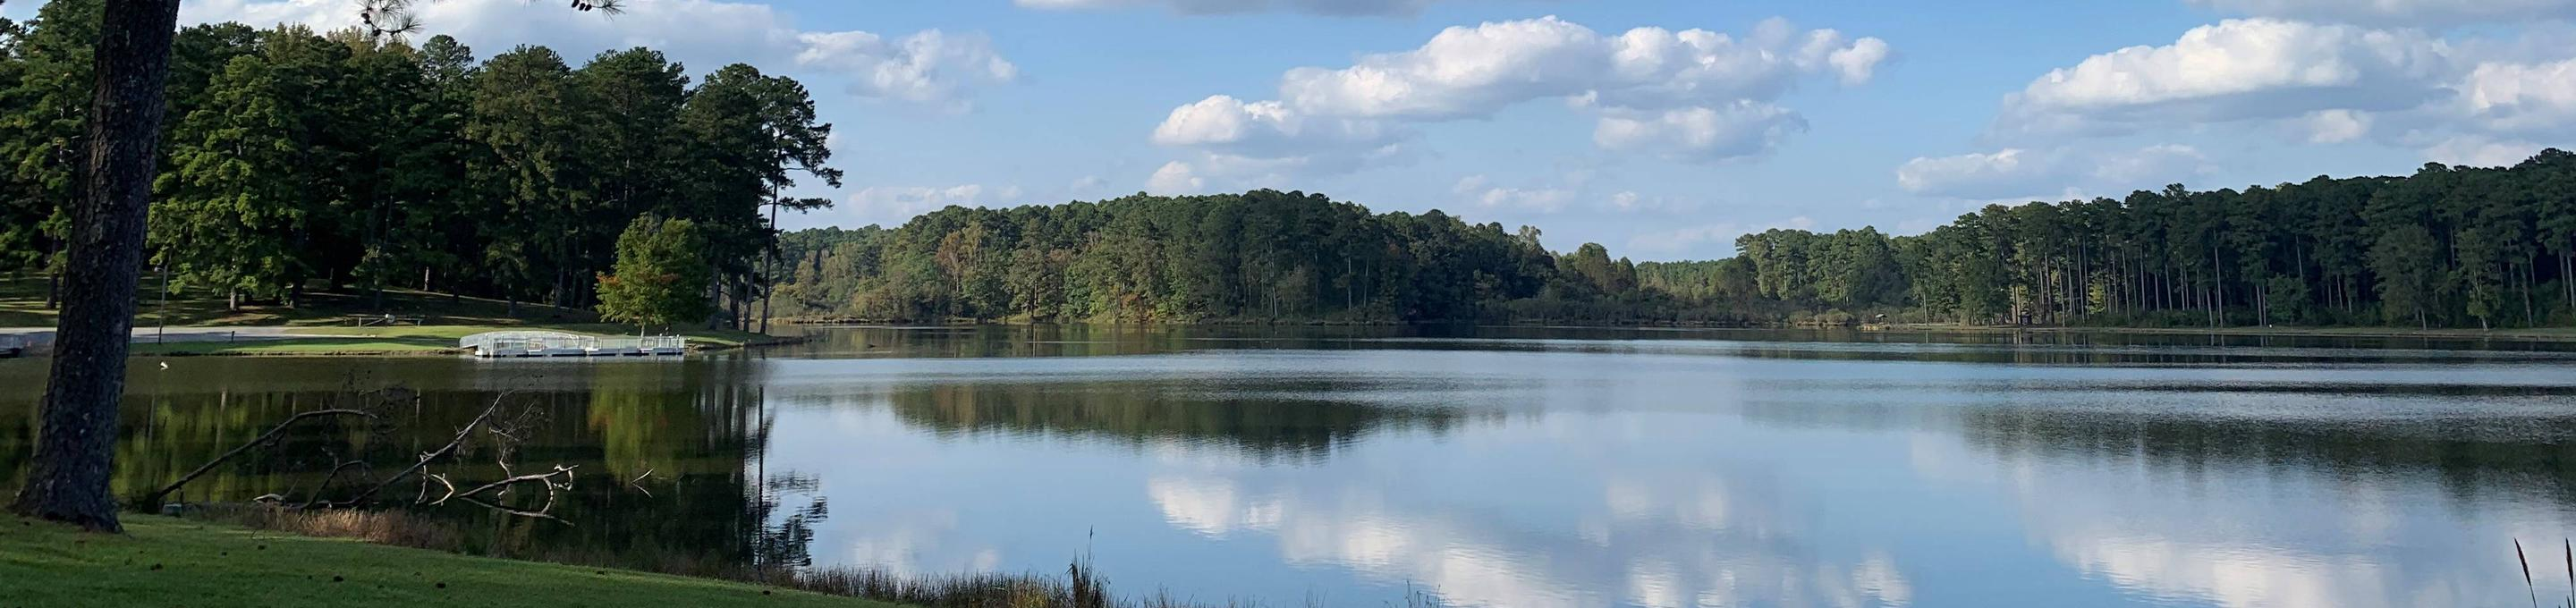 Choctaw Lake in OctoberPhoto looking across Choctaw Lake from the swimming area.